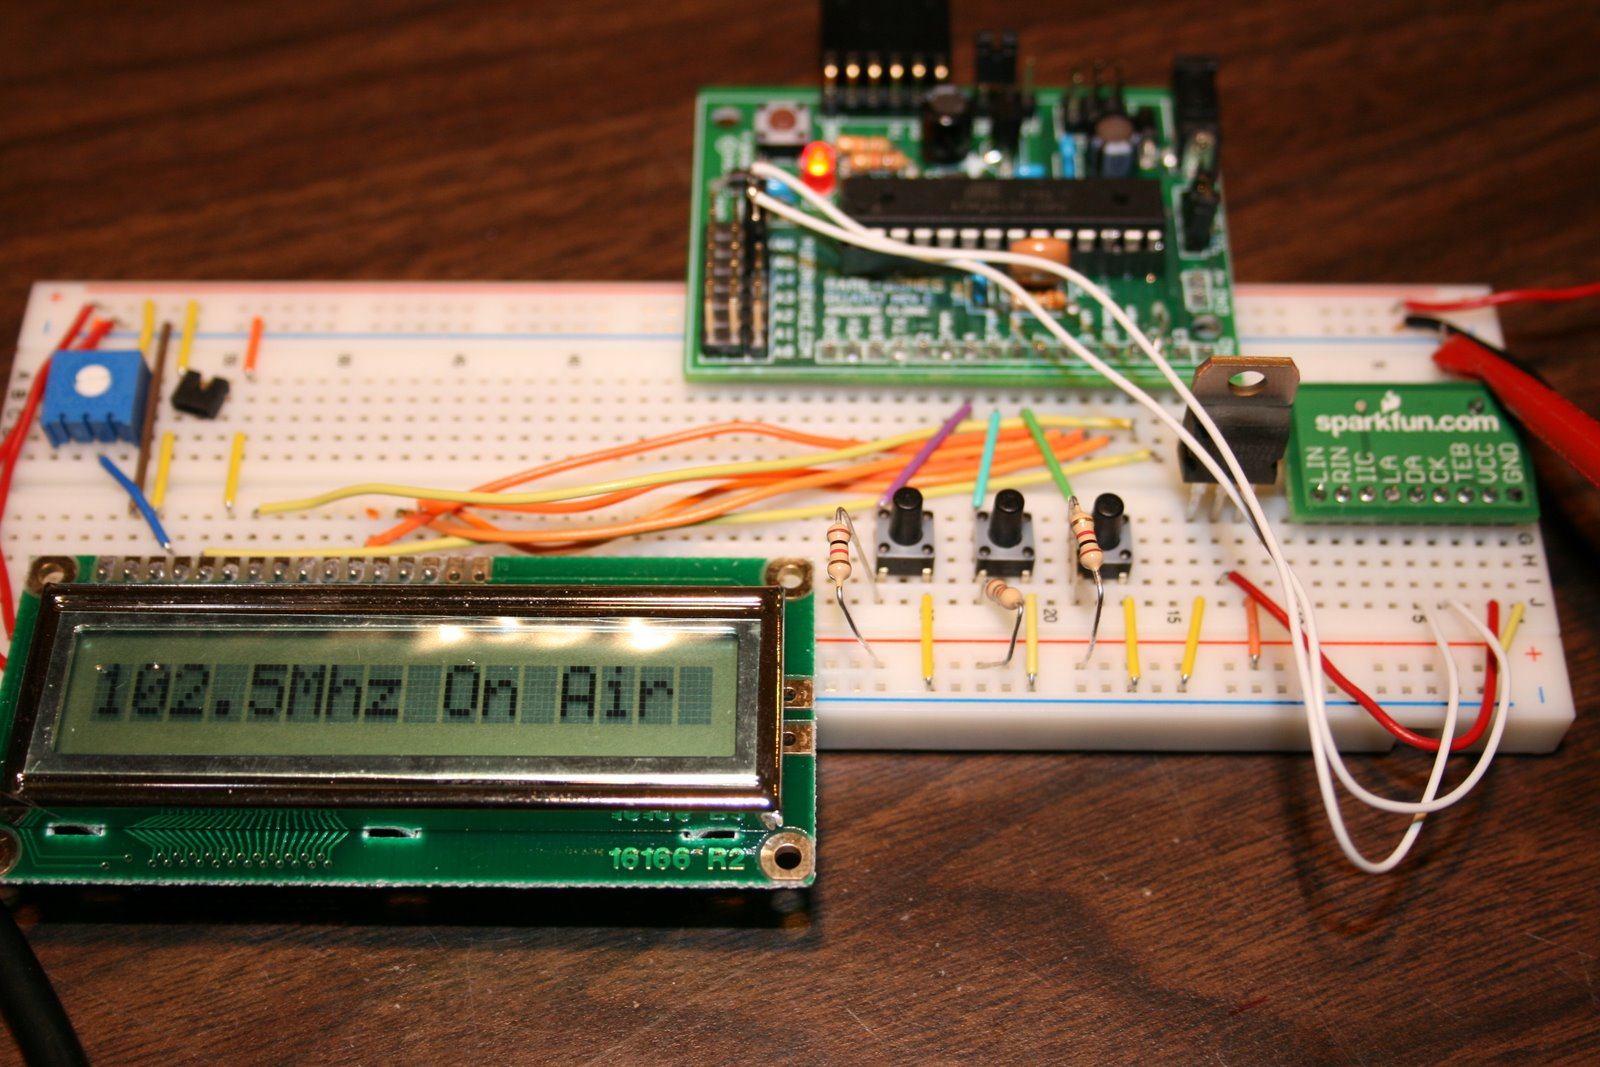 FM Stereo Broadcaster - Breadboard Version